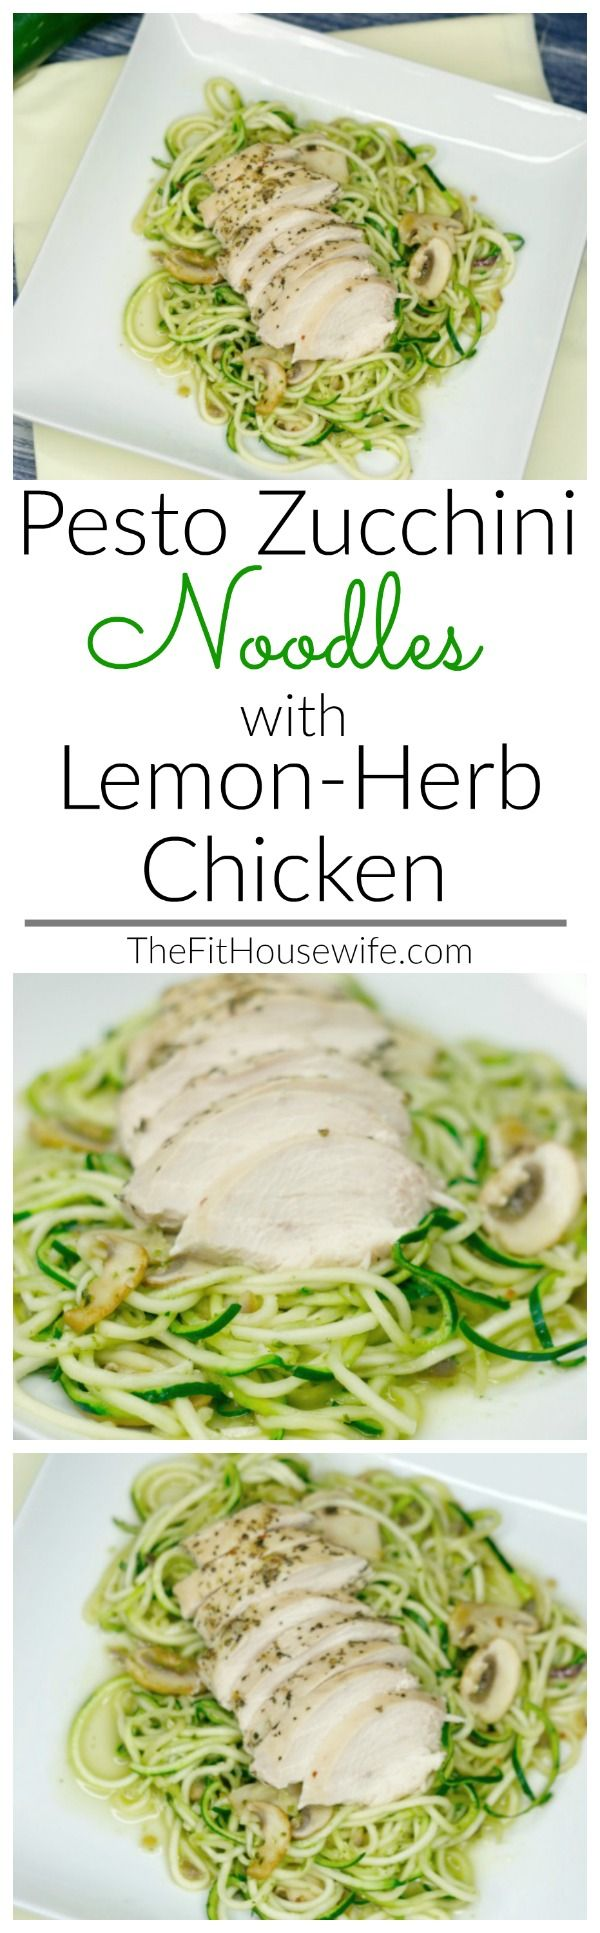 Pesto Zucchini Noodles with Lemon Herb Chicken. A low-carb meal that is delicious and simple to make.